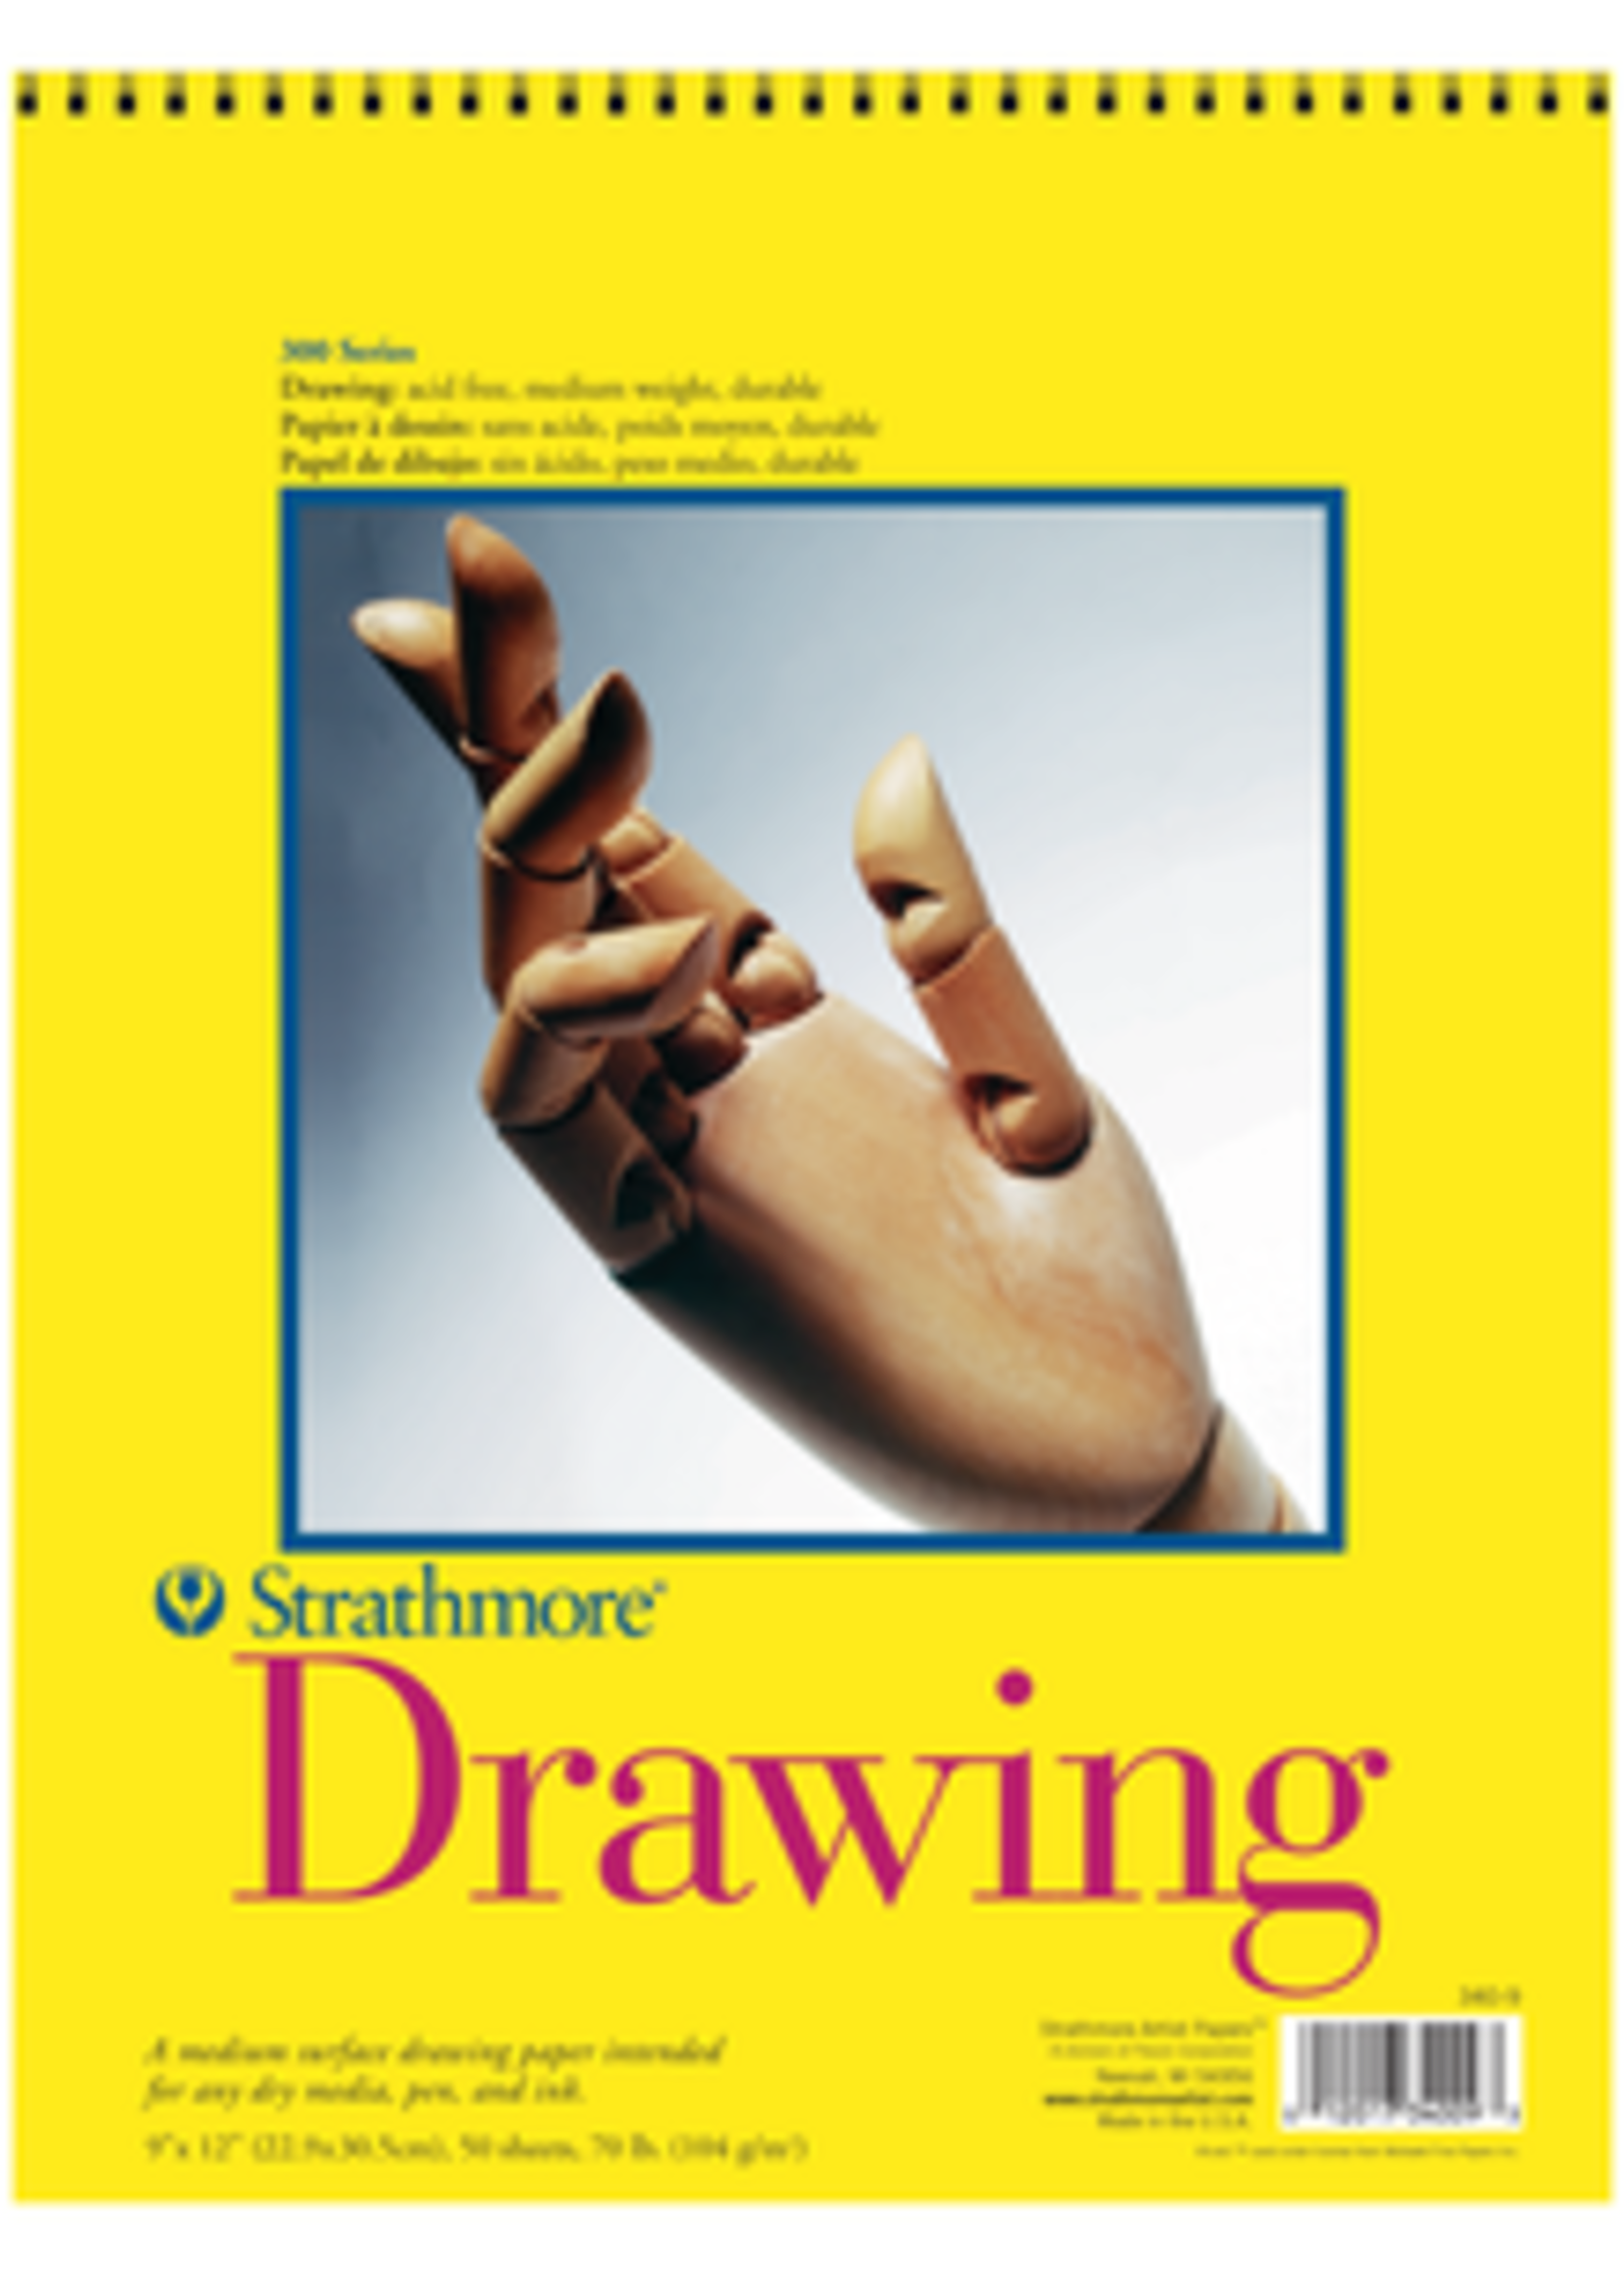 PACON/STRATHMORE TOP DRAWING PAD 70LB